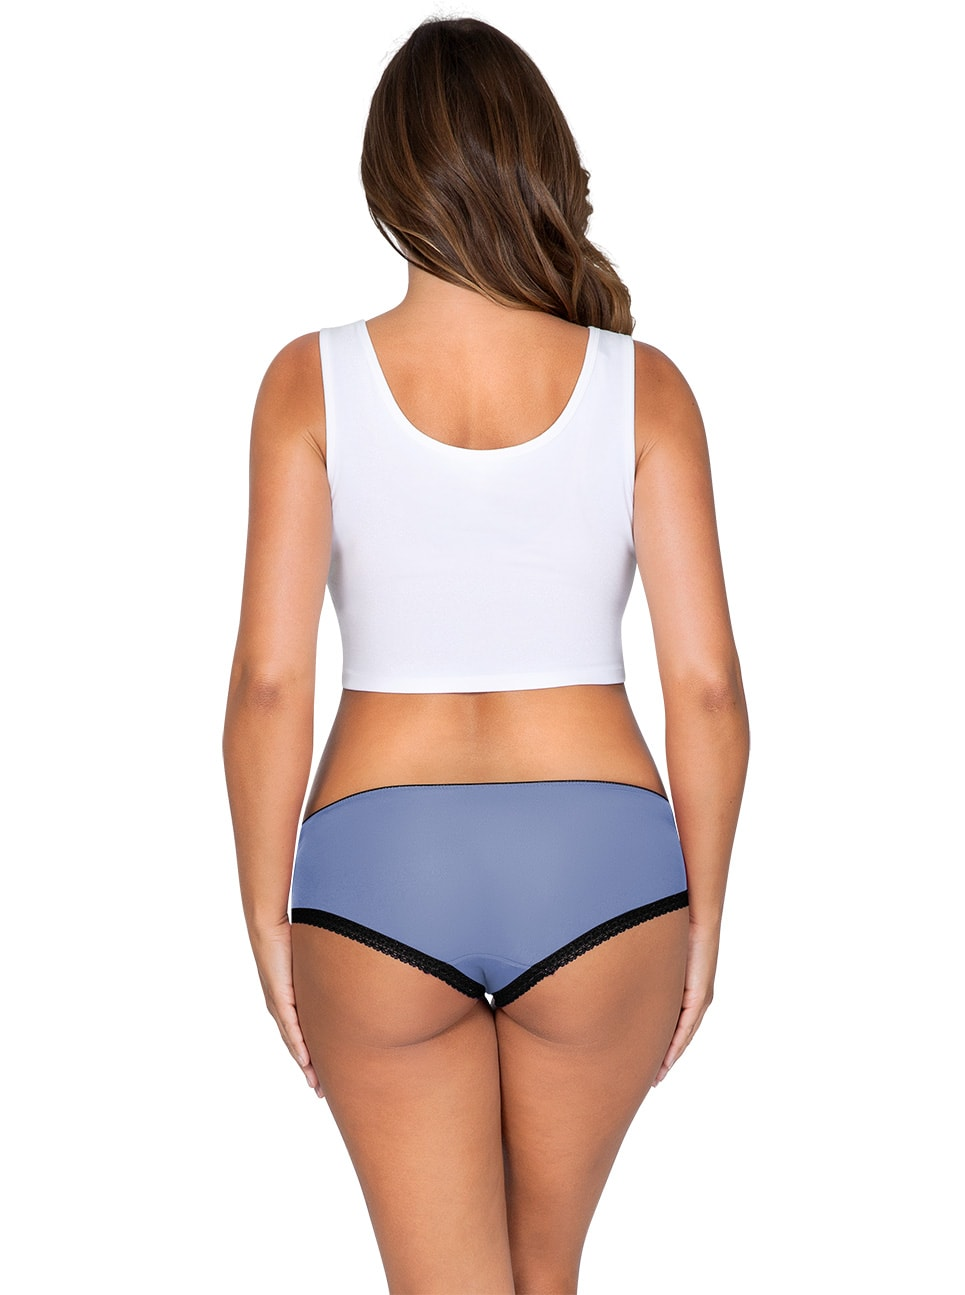 ParfaitPantyHipster PP501 C SilverBlueBack - So Lovely Hipster Silver Blue PP501